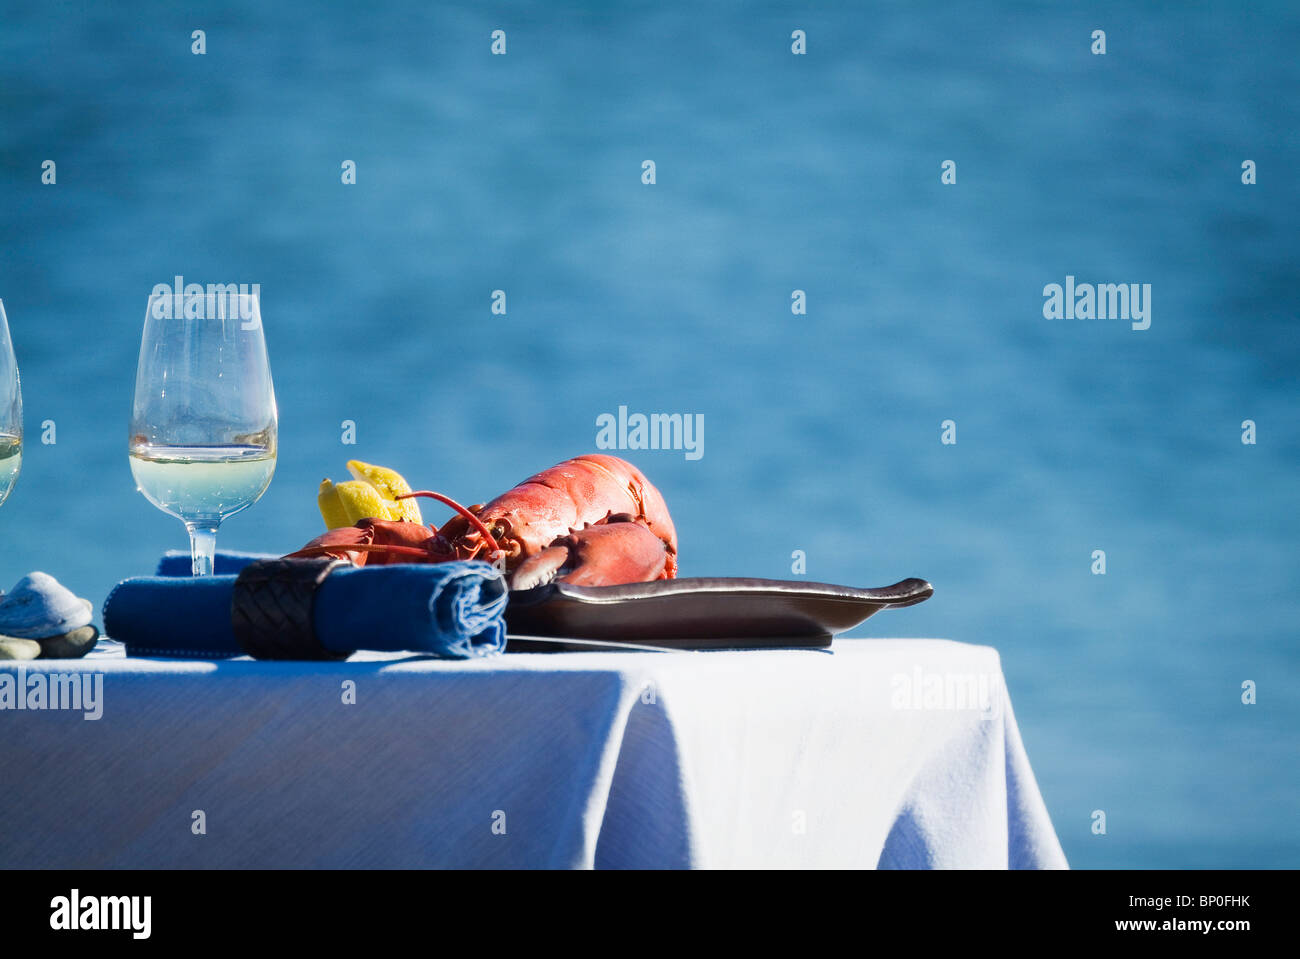 Laid table with lobster and white wine on seaside - Stock Image